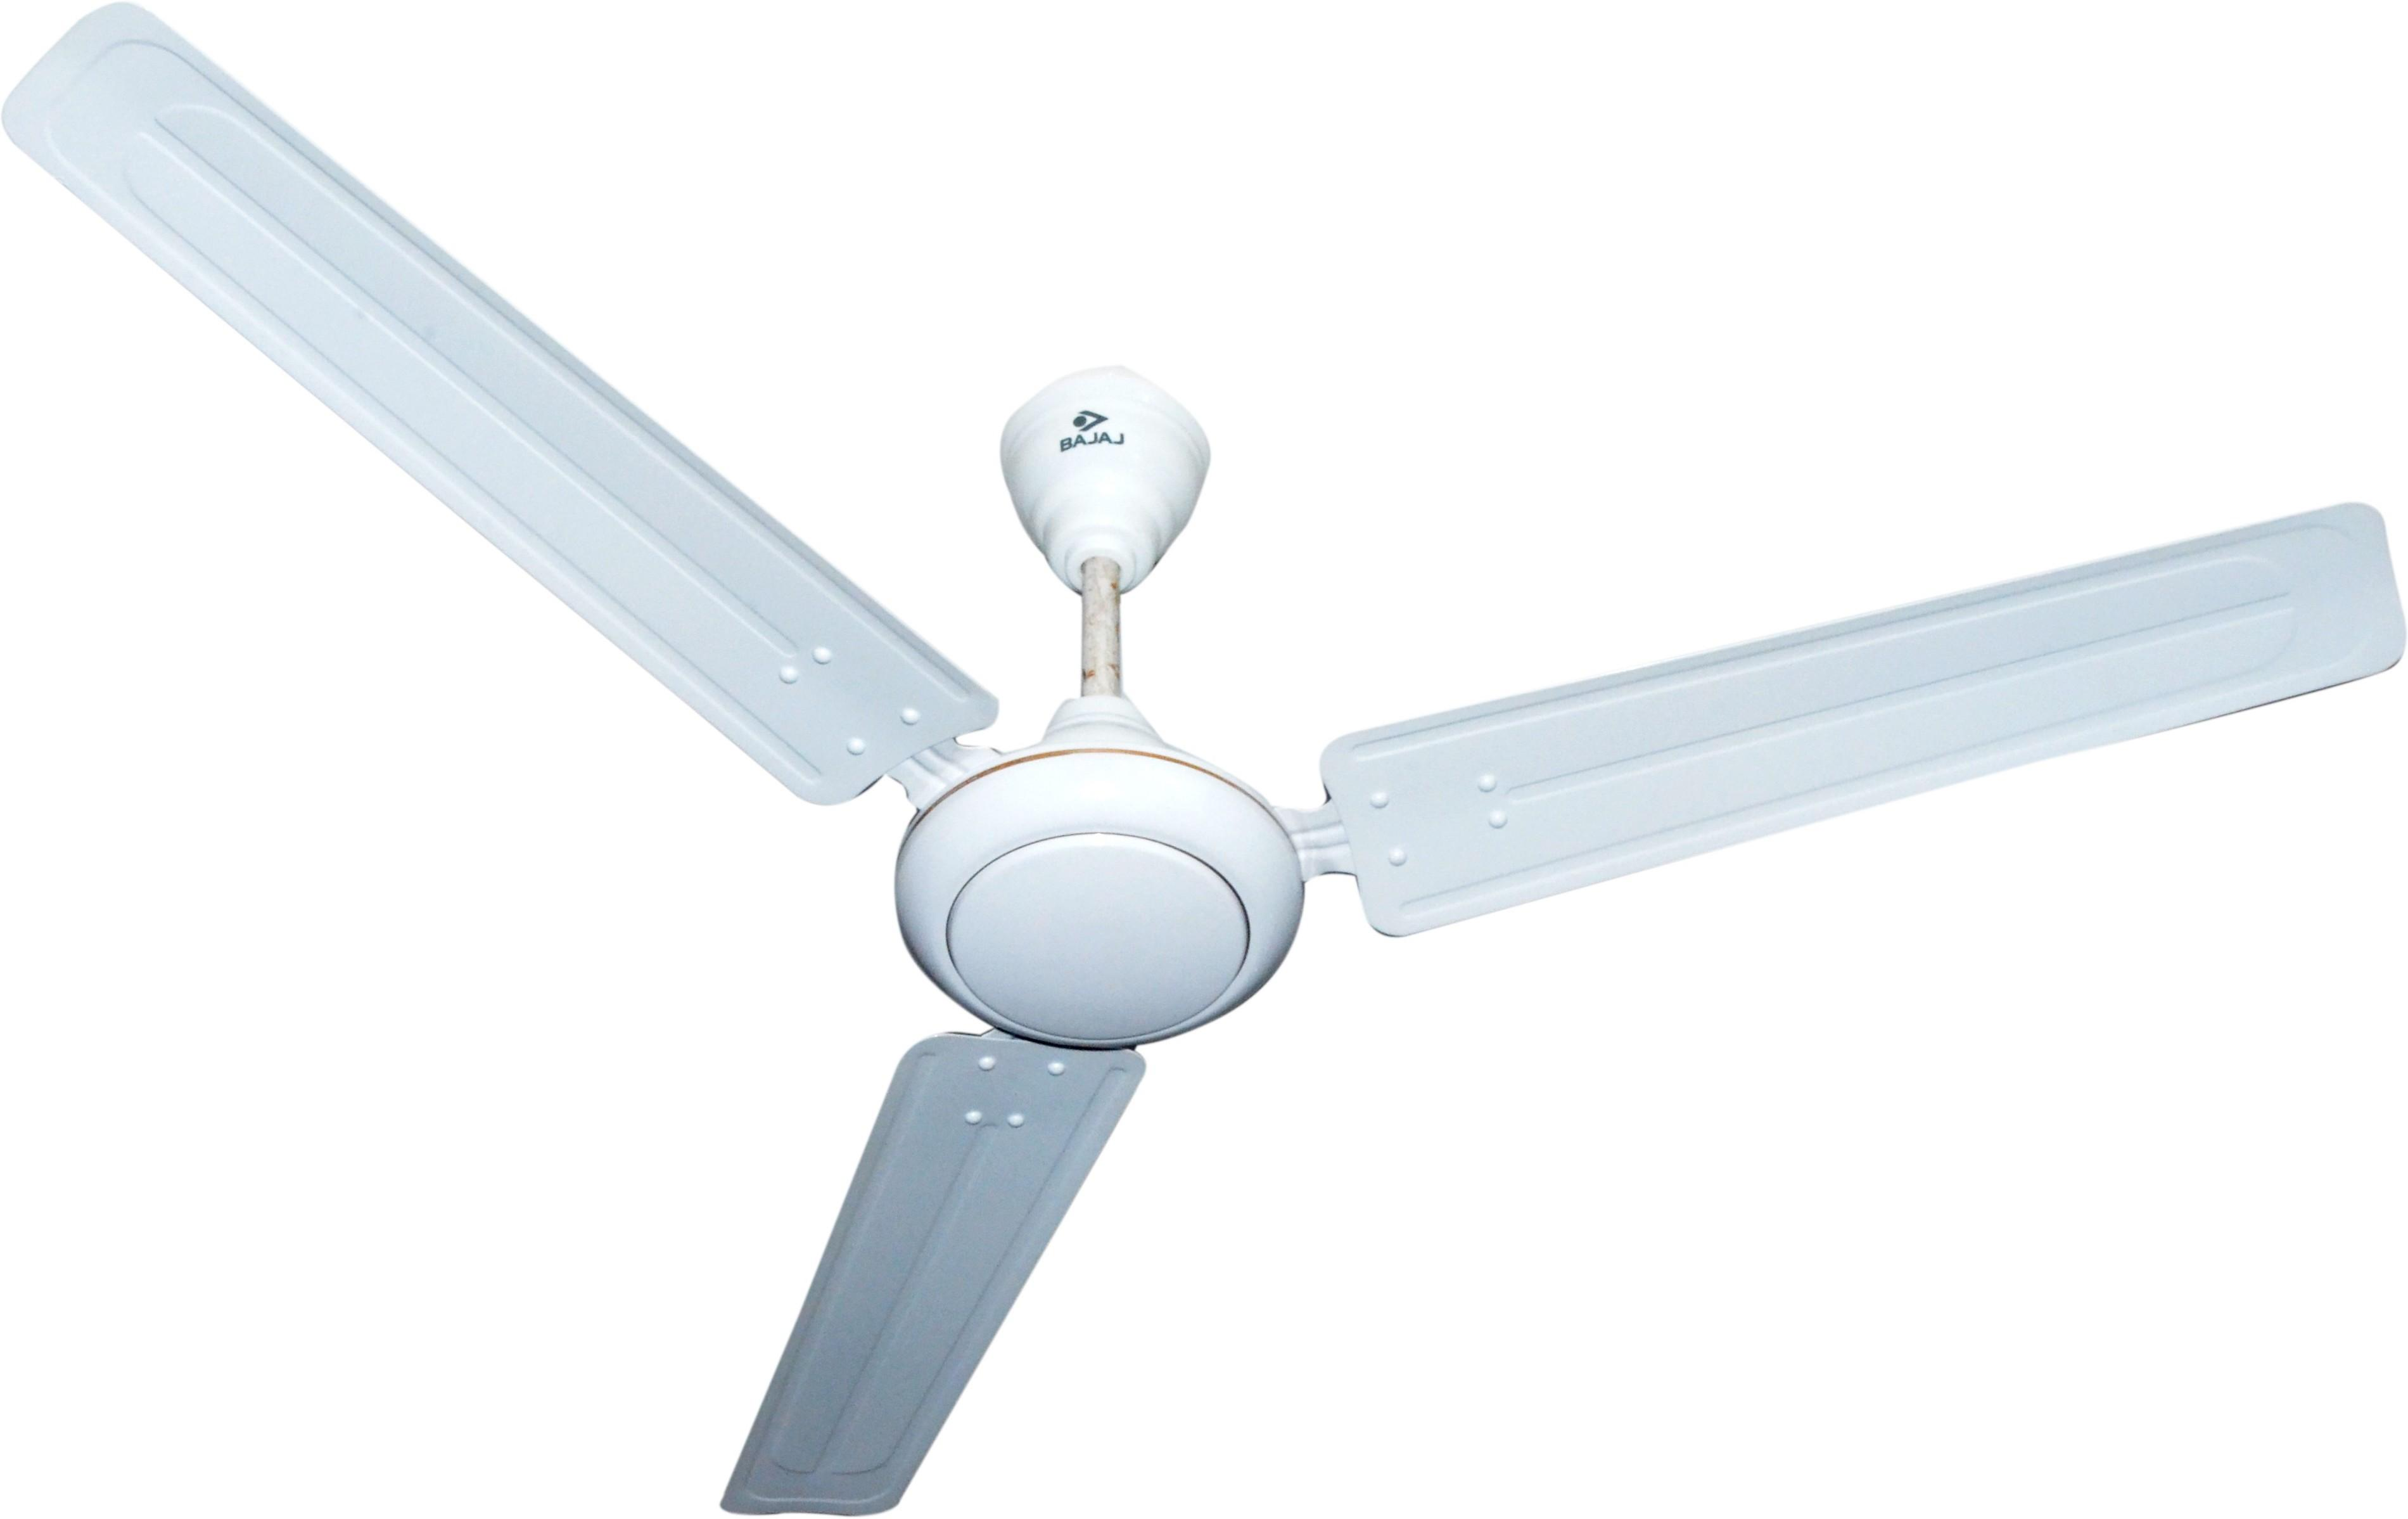 Bajaj Tezz 1200 Mm 3 Blade Ceiling Fan In India S And Specifications Amex